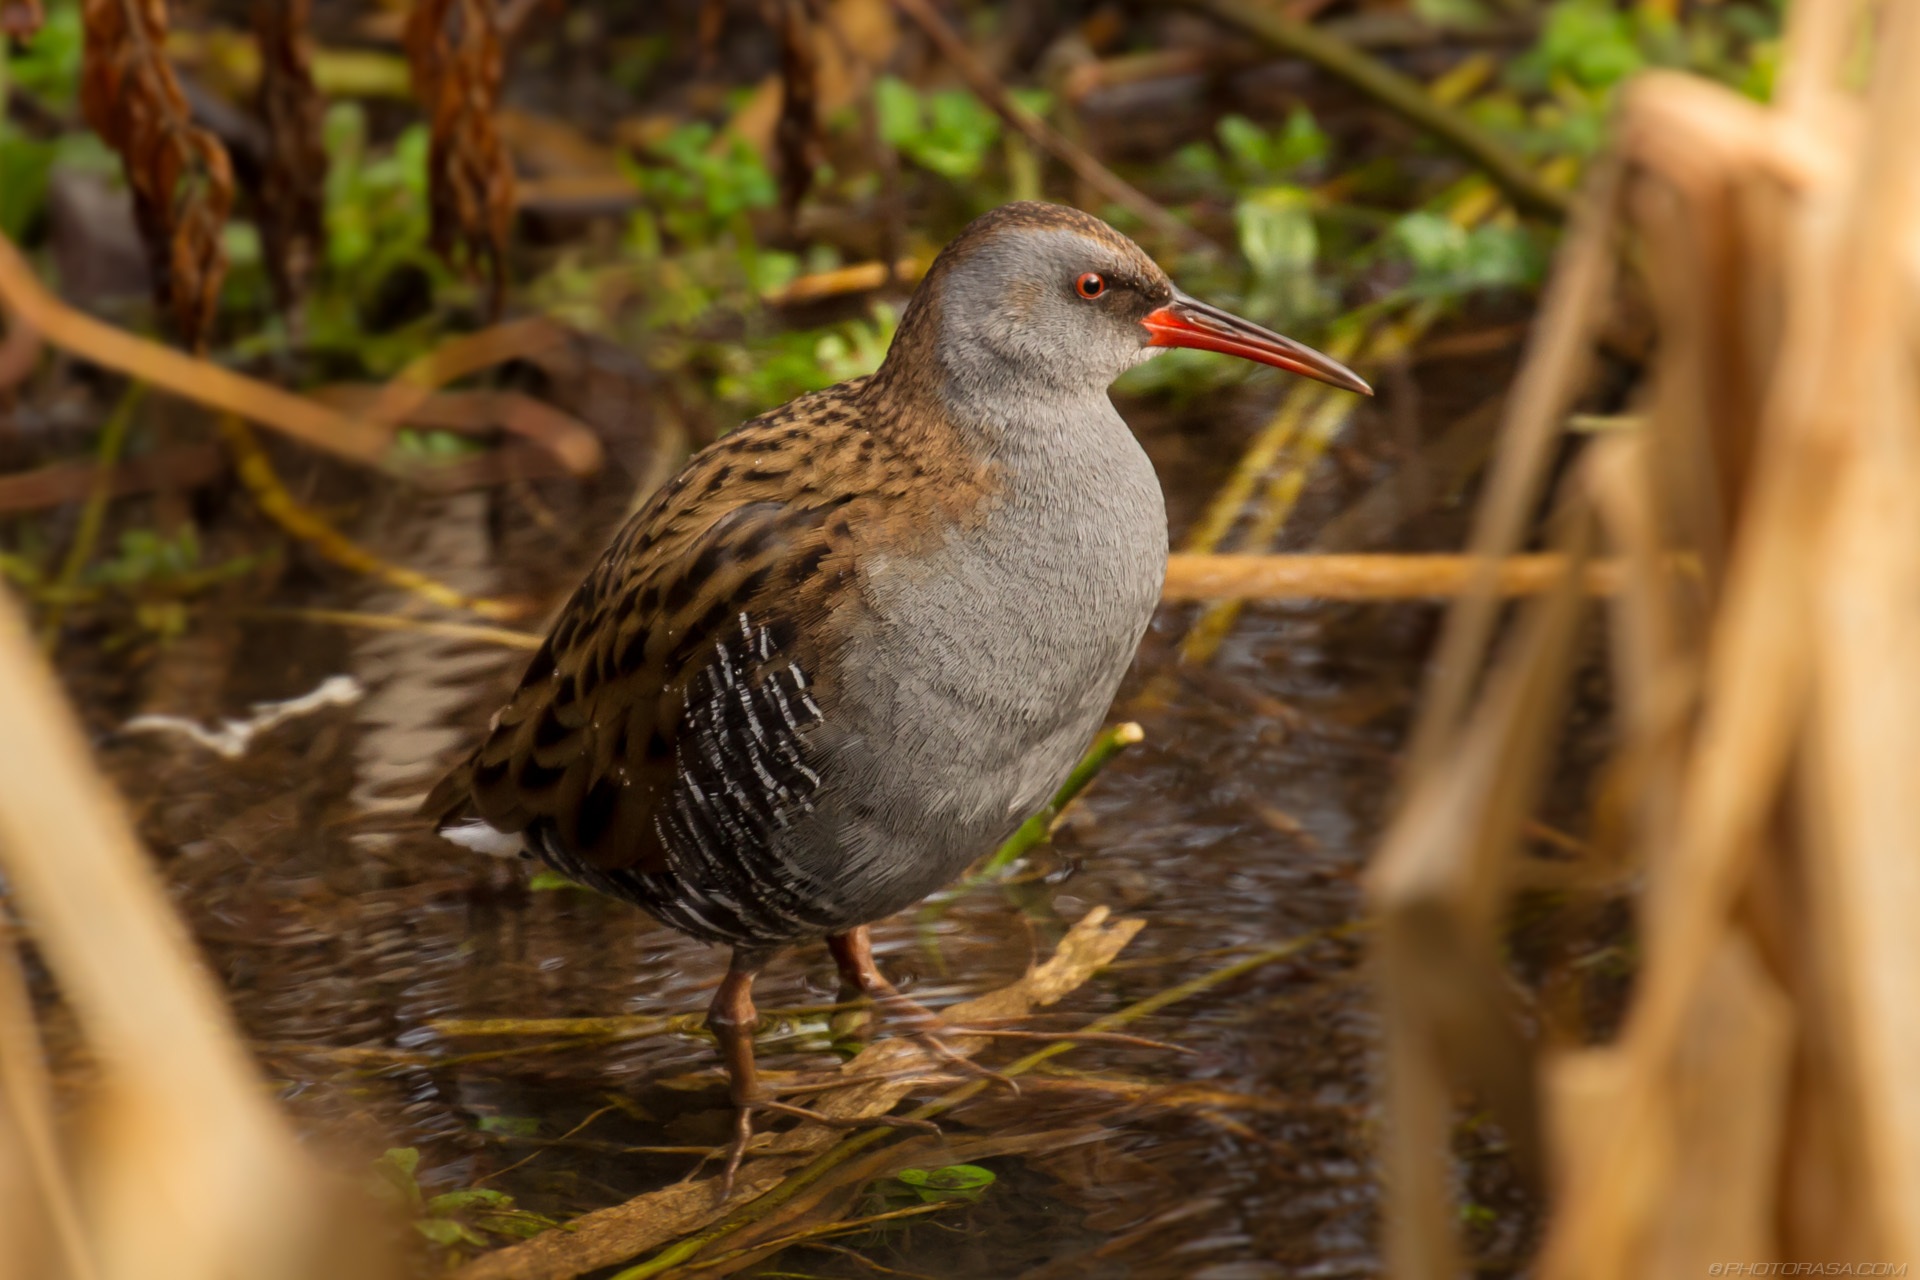 https://photorasa.com/water-rail-by-the-stream/water-rail-looking-right/